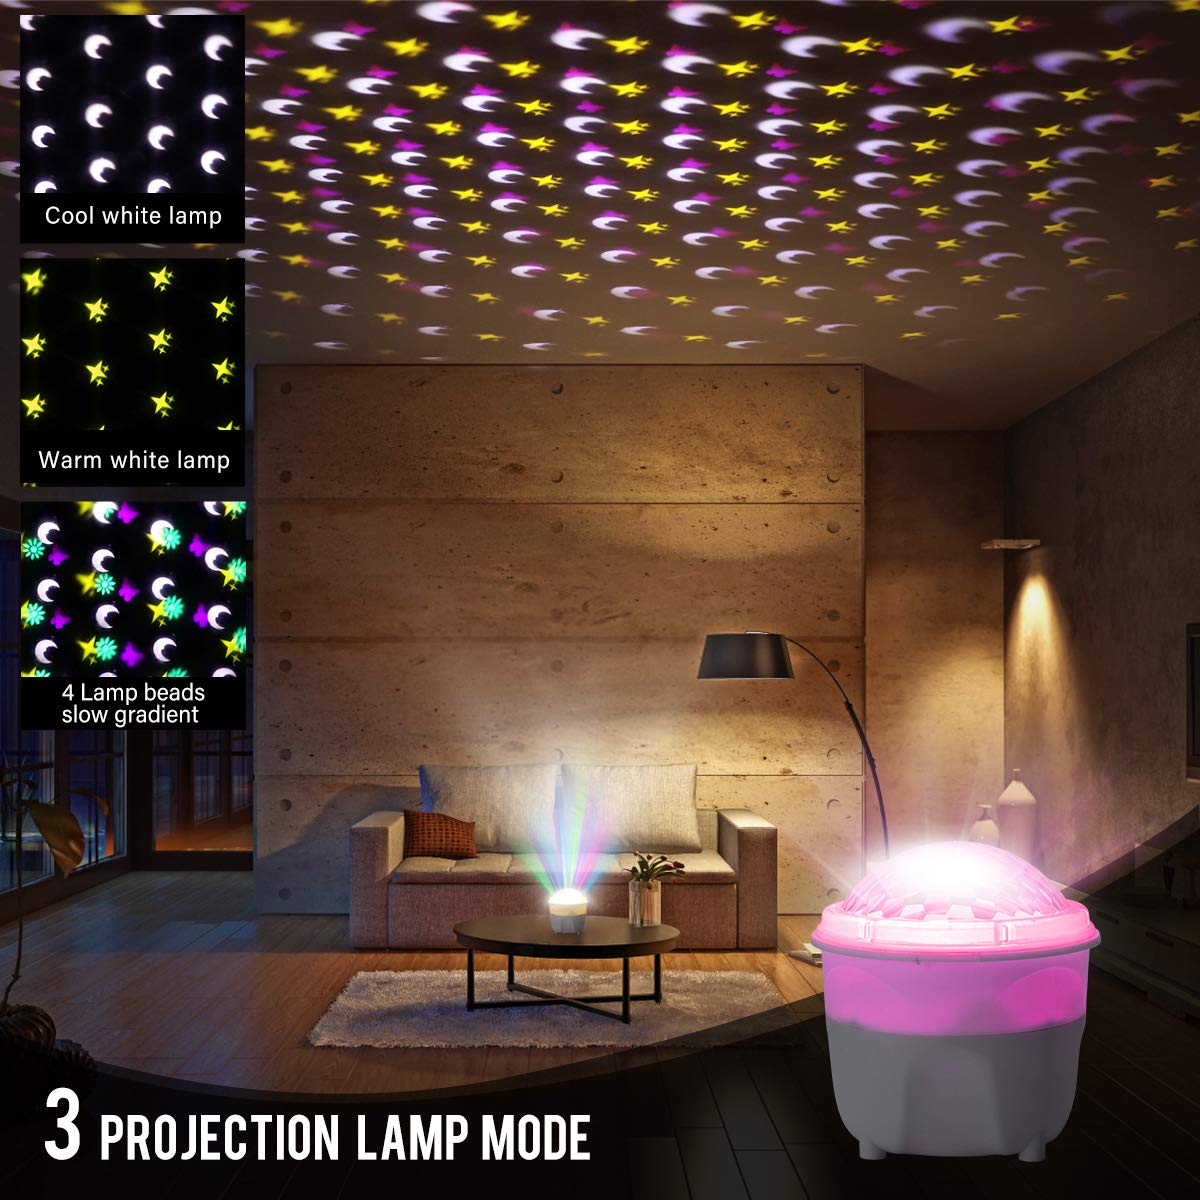 Greatlizard Night Light Projector Indoor,360 Degree Rotating Projector Night Lamp with Timer Decoration for Christmas,Halloween,Birthday,Wedding Party by Greatlizard